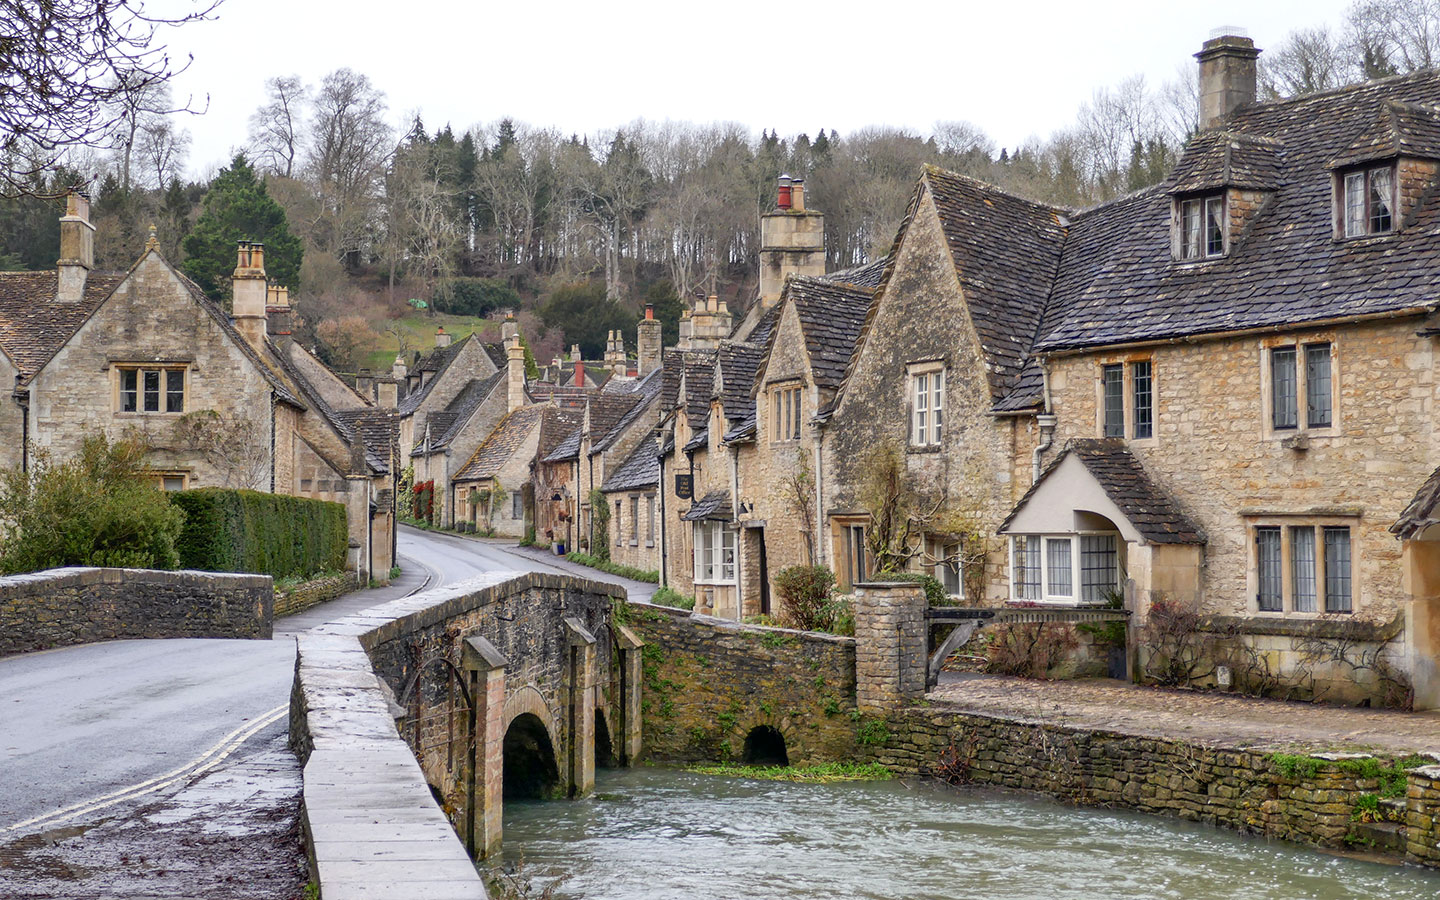 Visiting Castle Combe: A Local's Guide